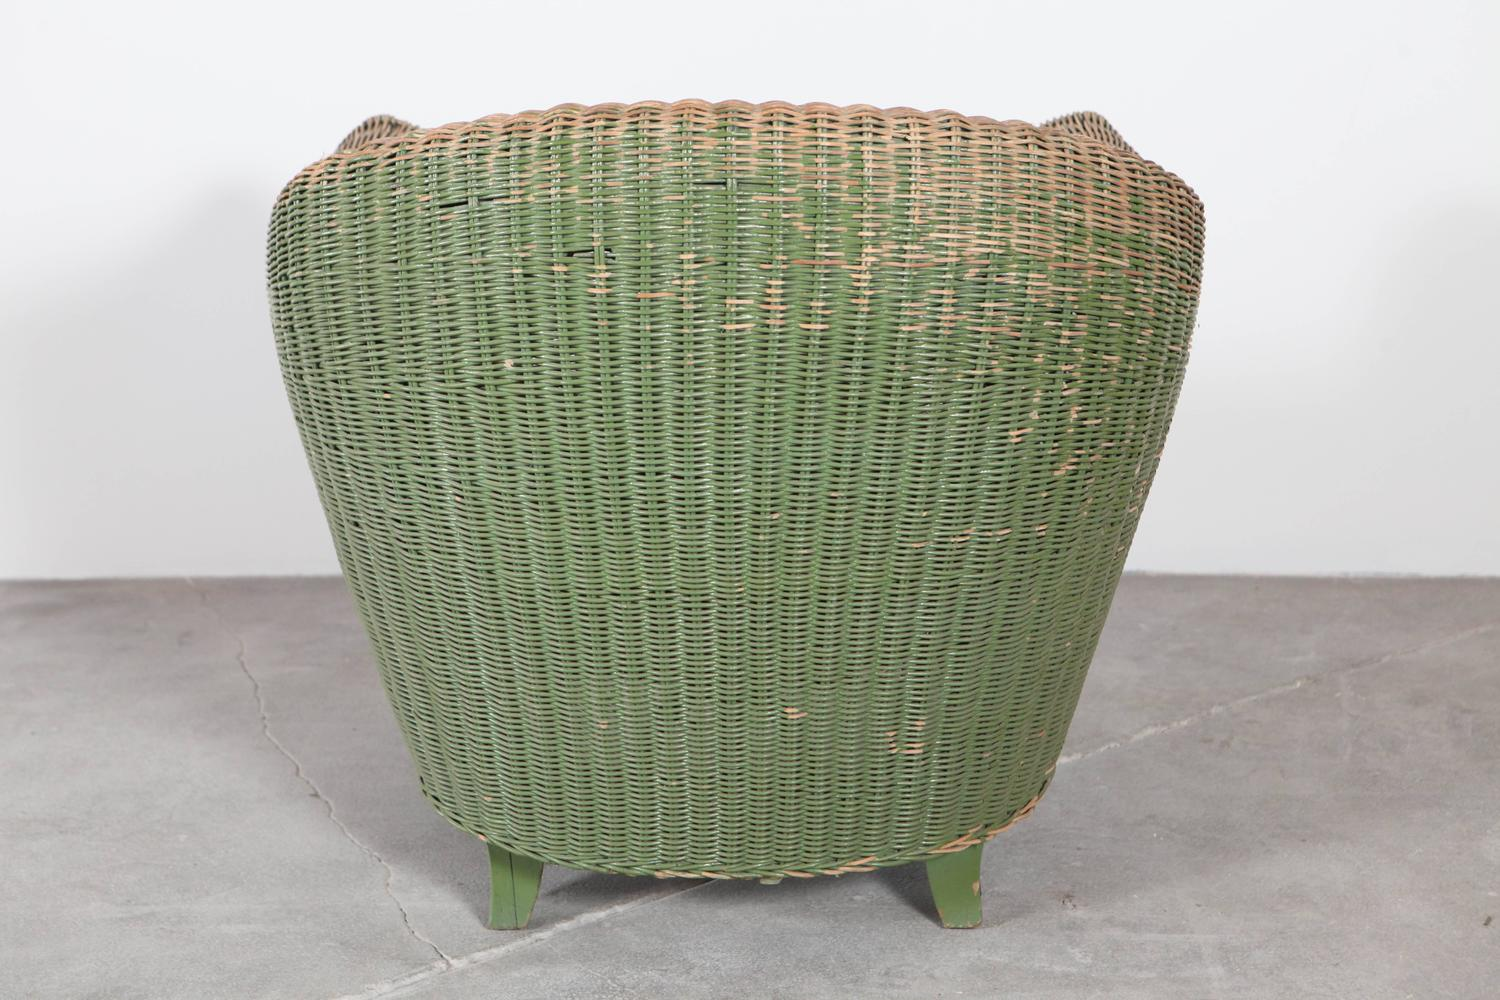 Pair Of Italian Wicker Green Outdoor Garden Chairs At 1stdibs